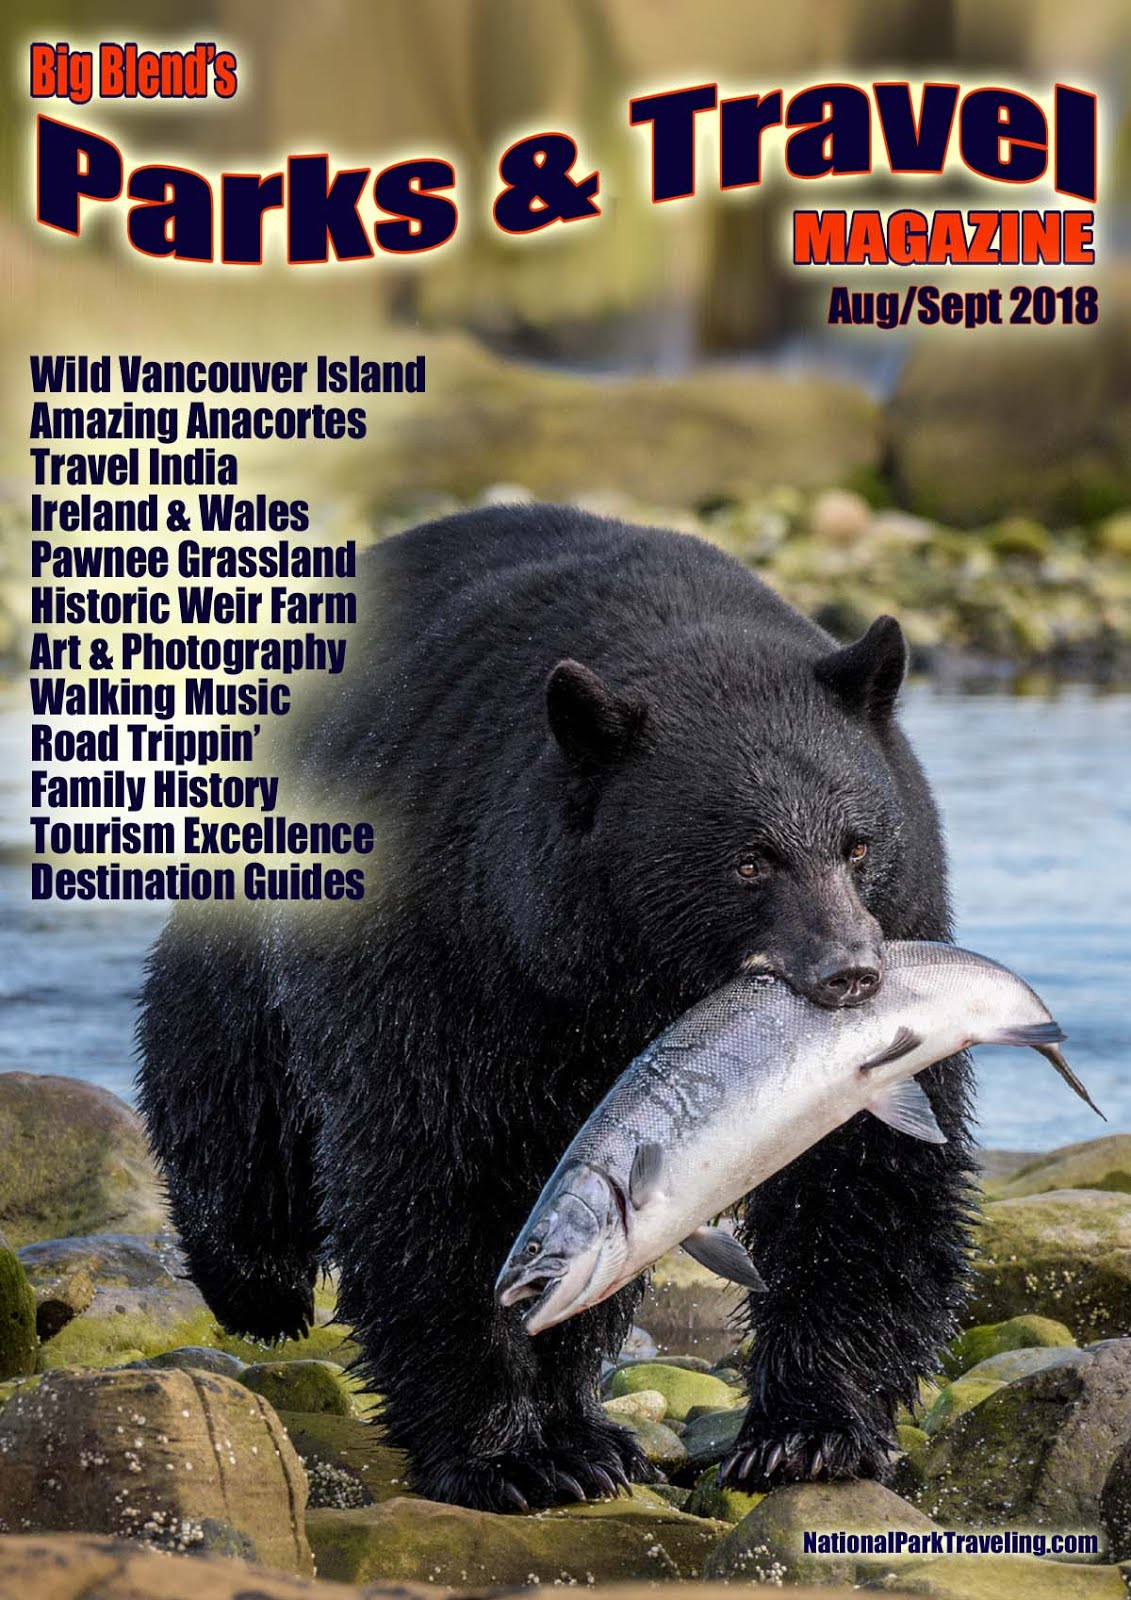 Parks and Travel Magazine